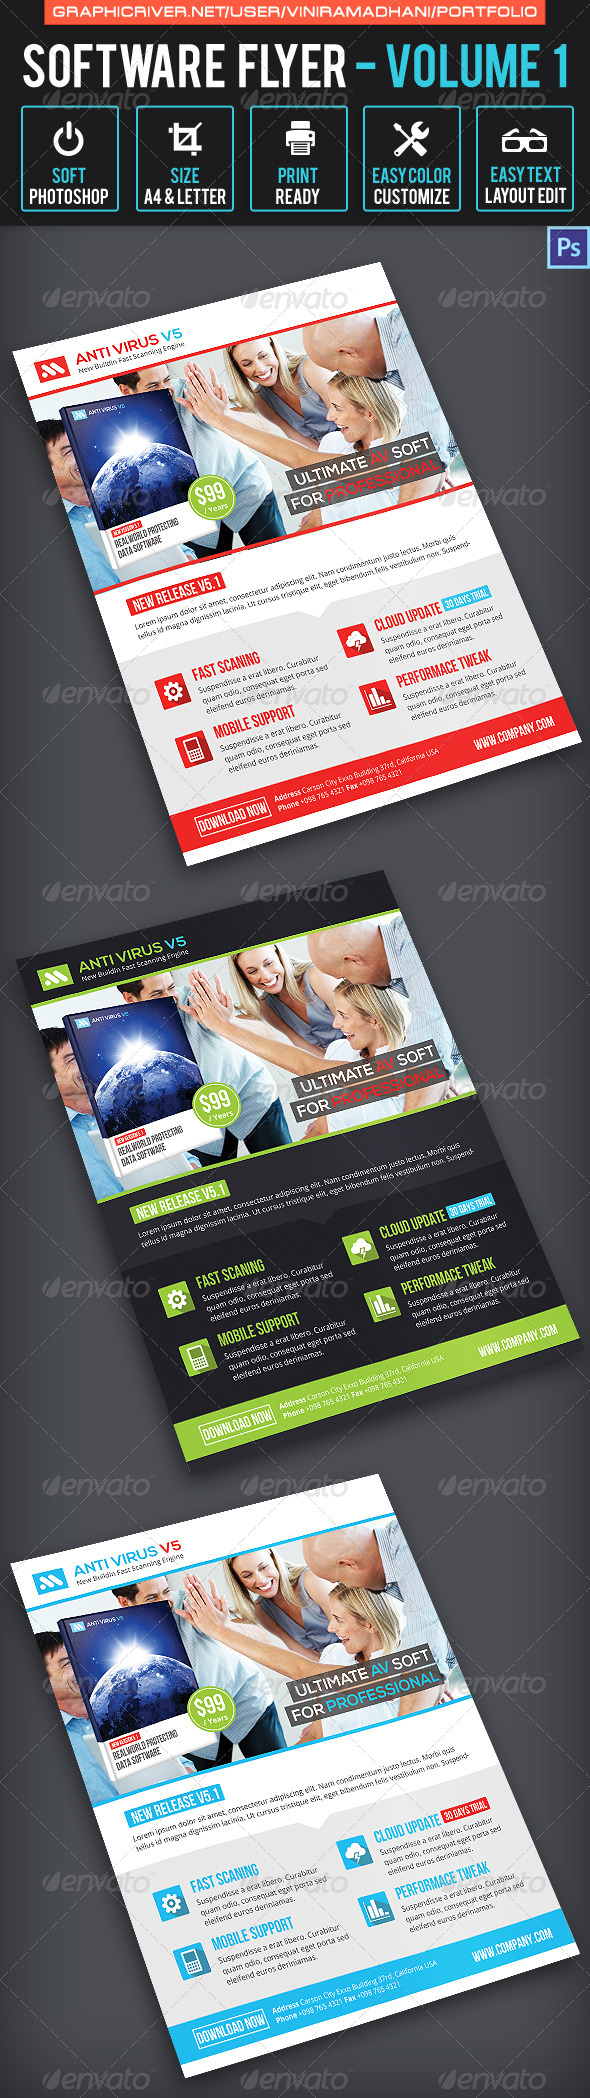 GraphicRiver Software Flyer Volume 1 7605474